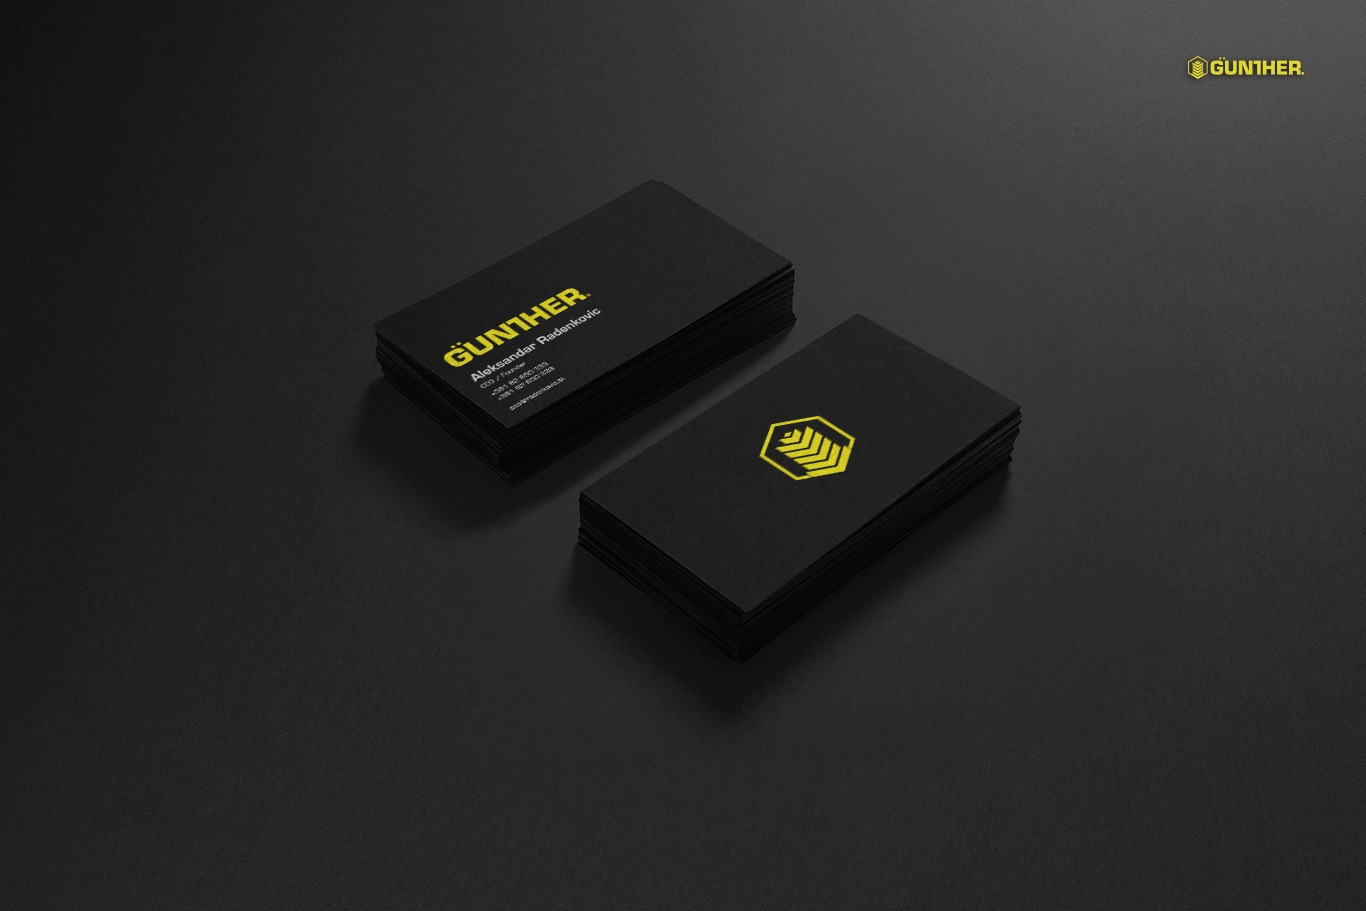 gunther business card design